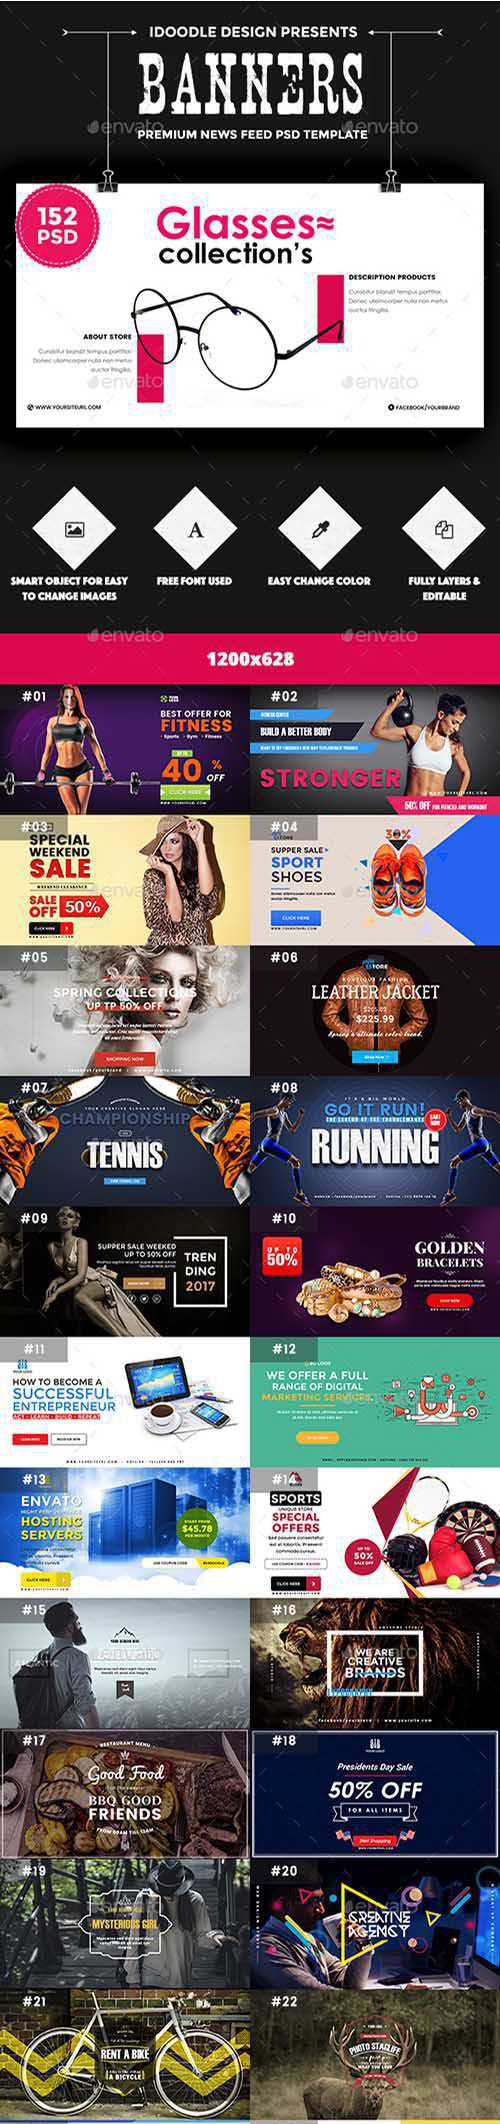 GR - Promotion NewsFeed Ads - 152 PSD 02 Size Each 15295067